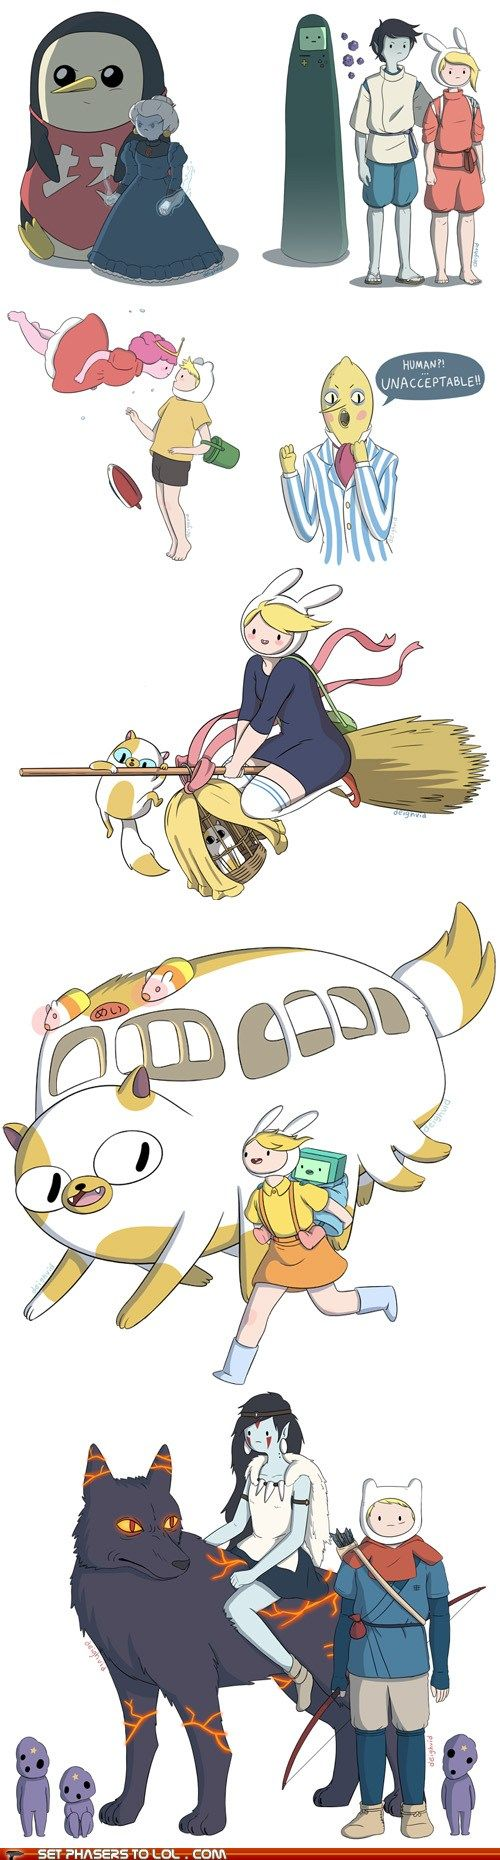 If Miyasaki created Adventure Time